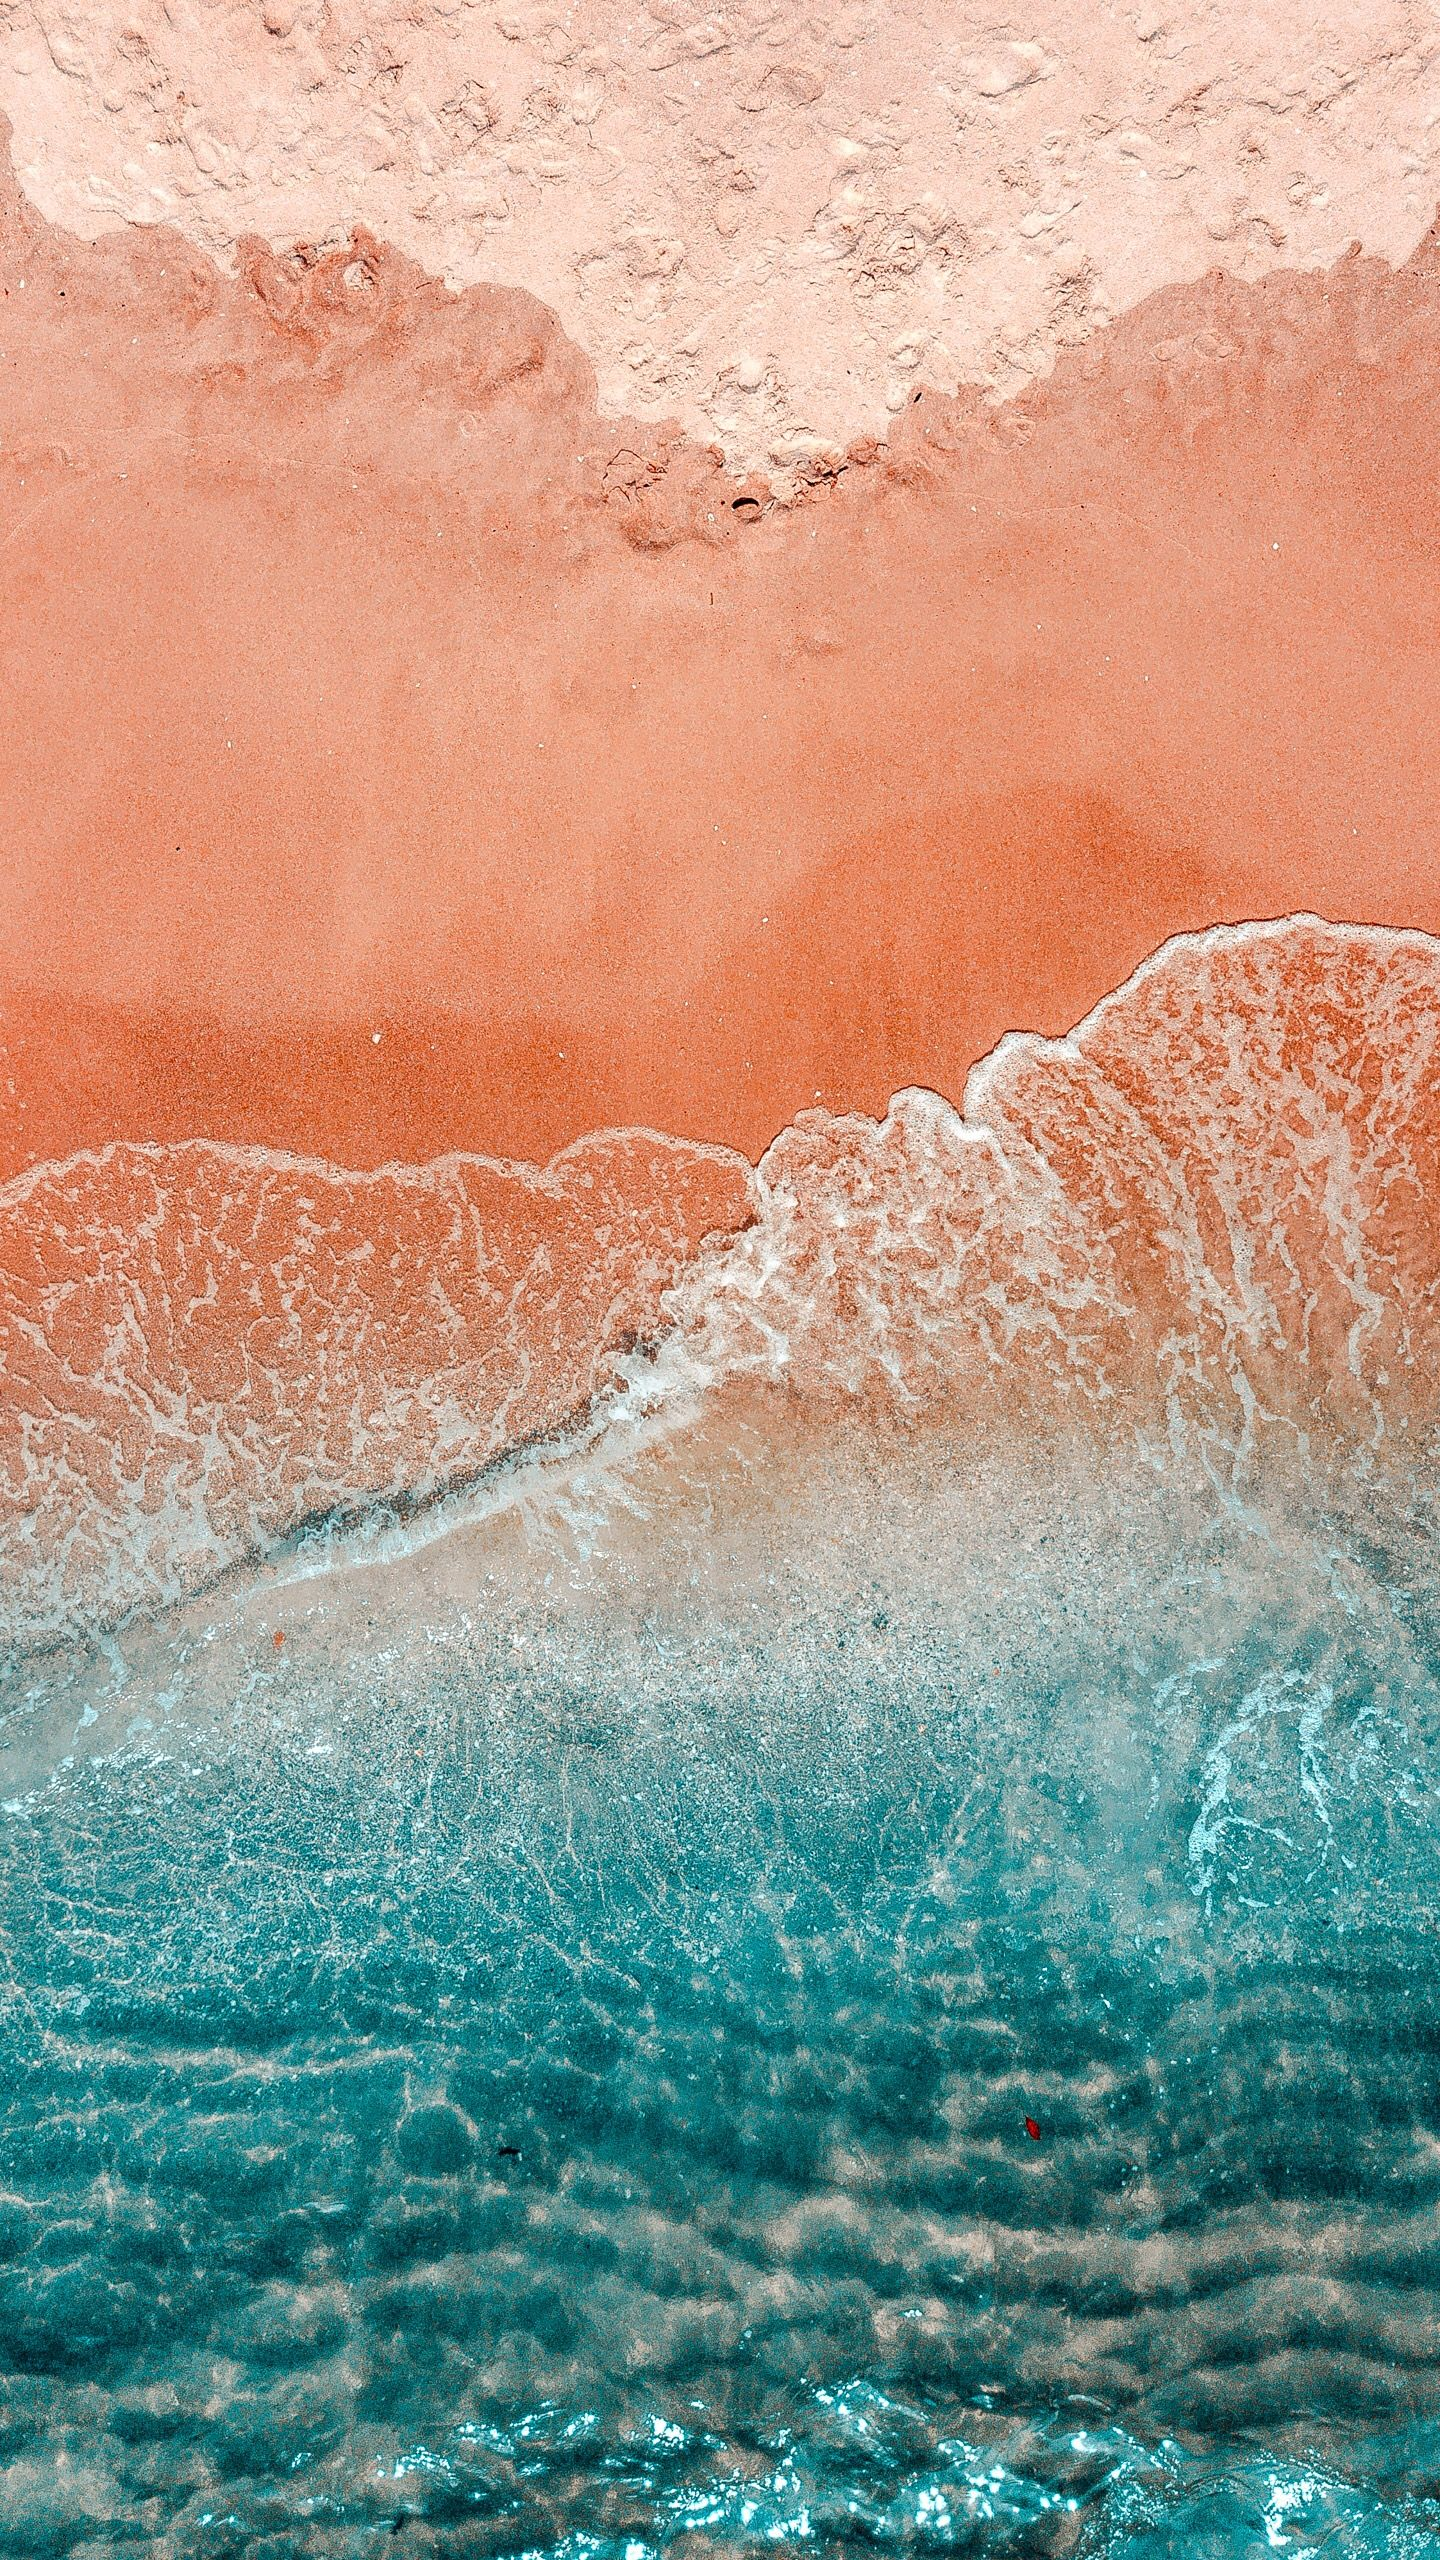 Ocean Sand Wallpaper Retro Active Art Design Decor